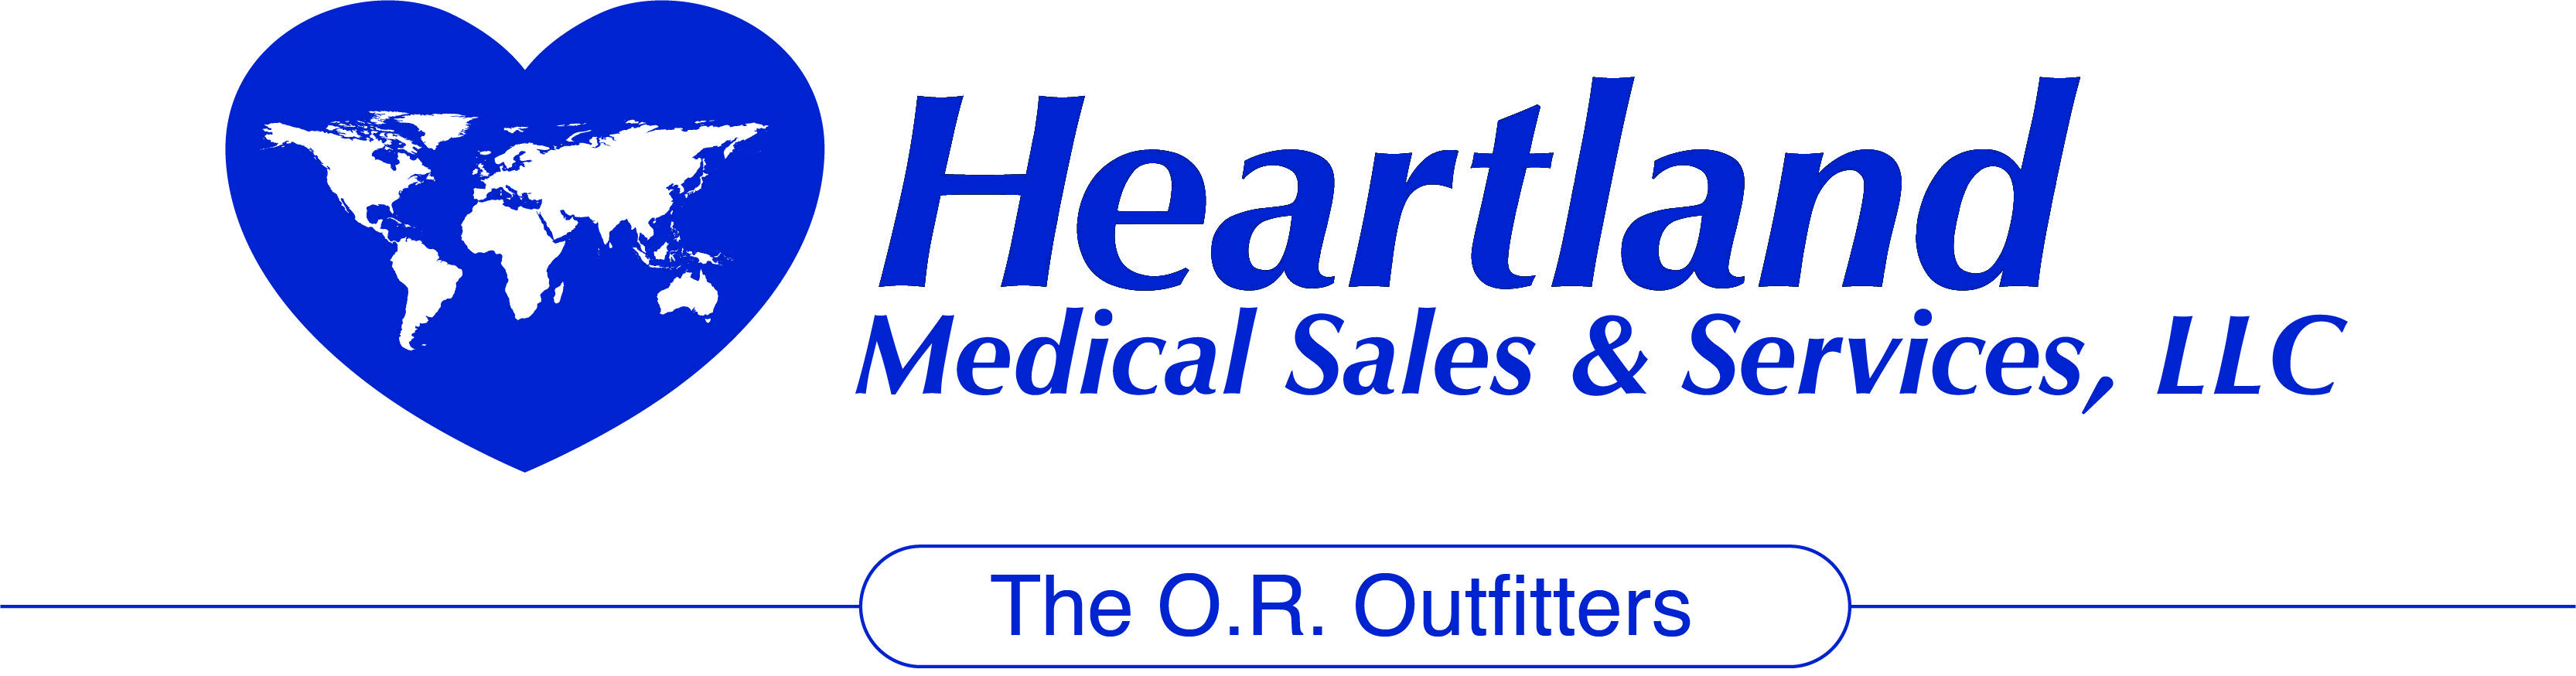 Medical Equipment For Hospitals, Operating Rooms, Surgical Centers, Clinics | Heartland Medical